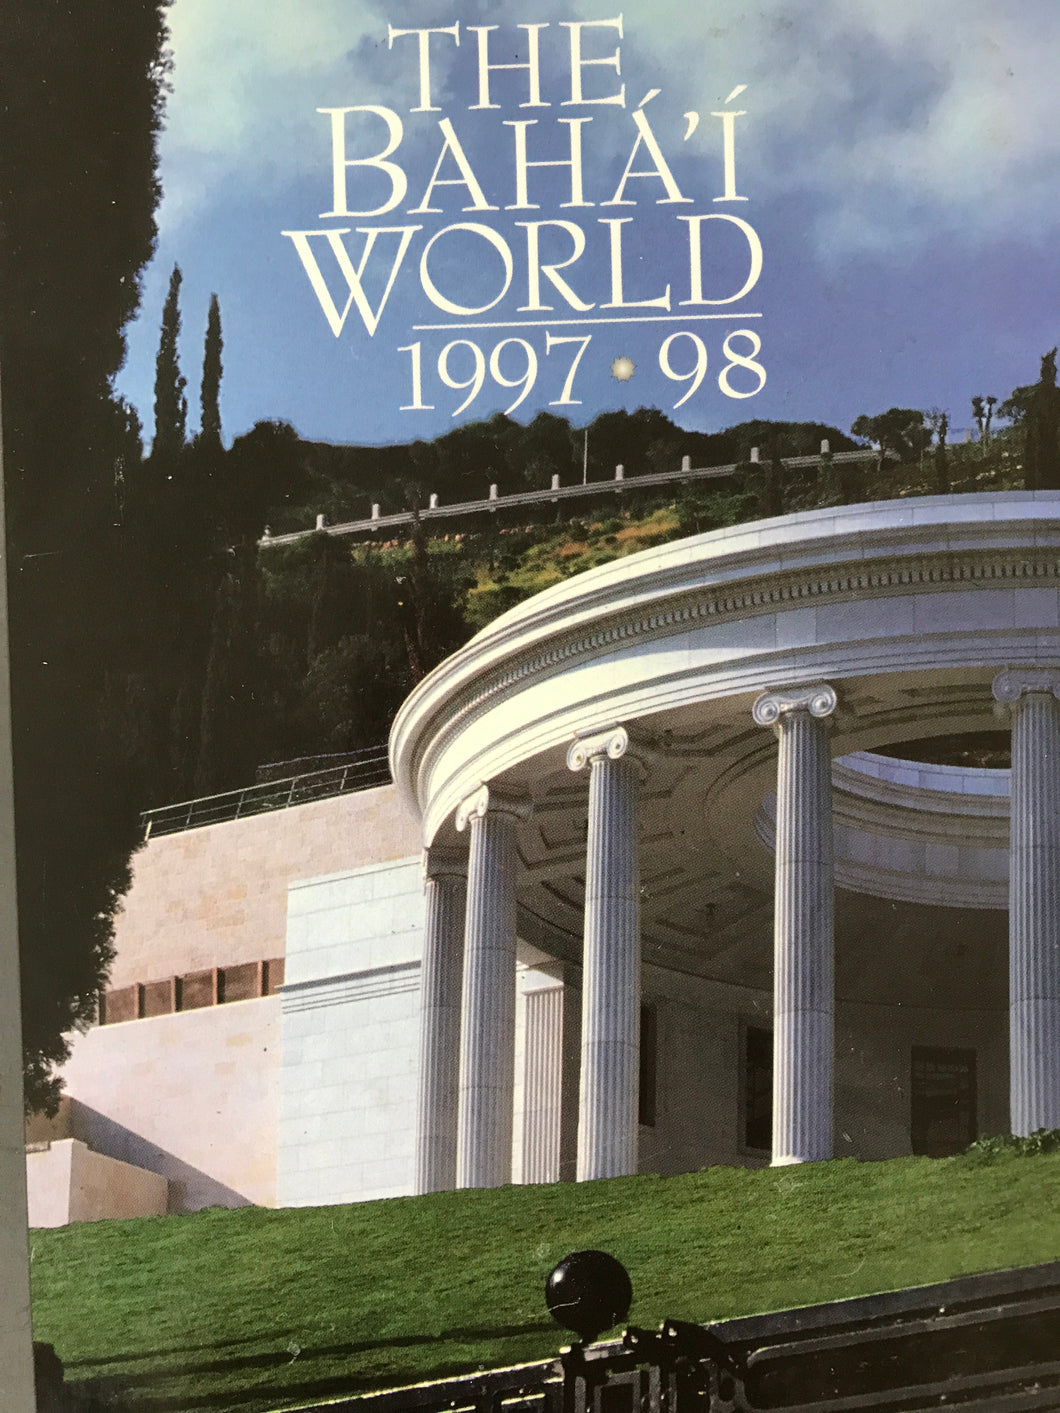 Bahá'í World, The 1997-1998